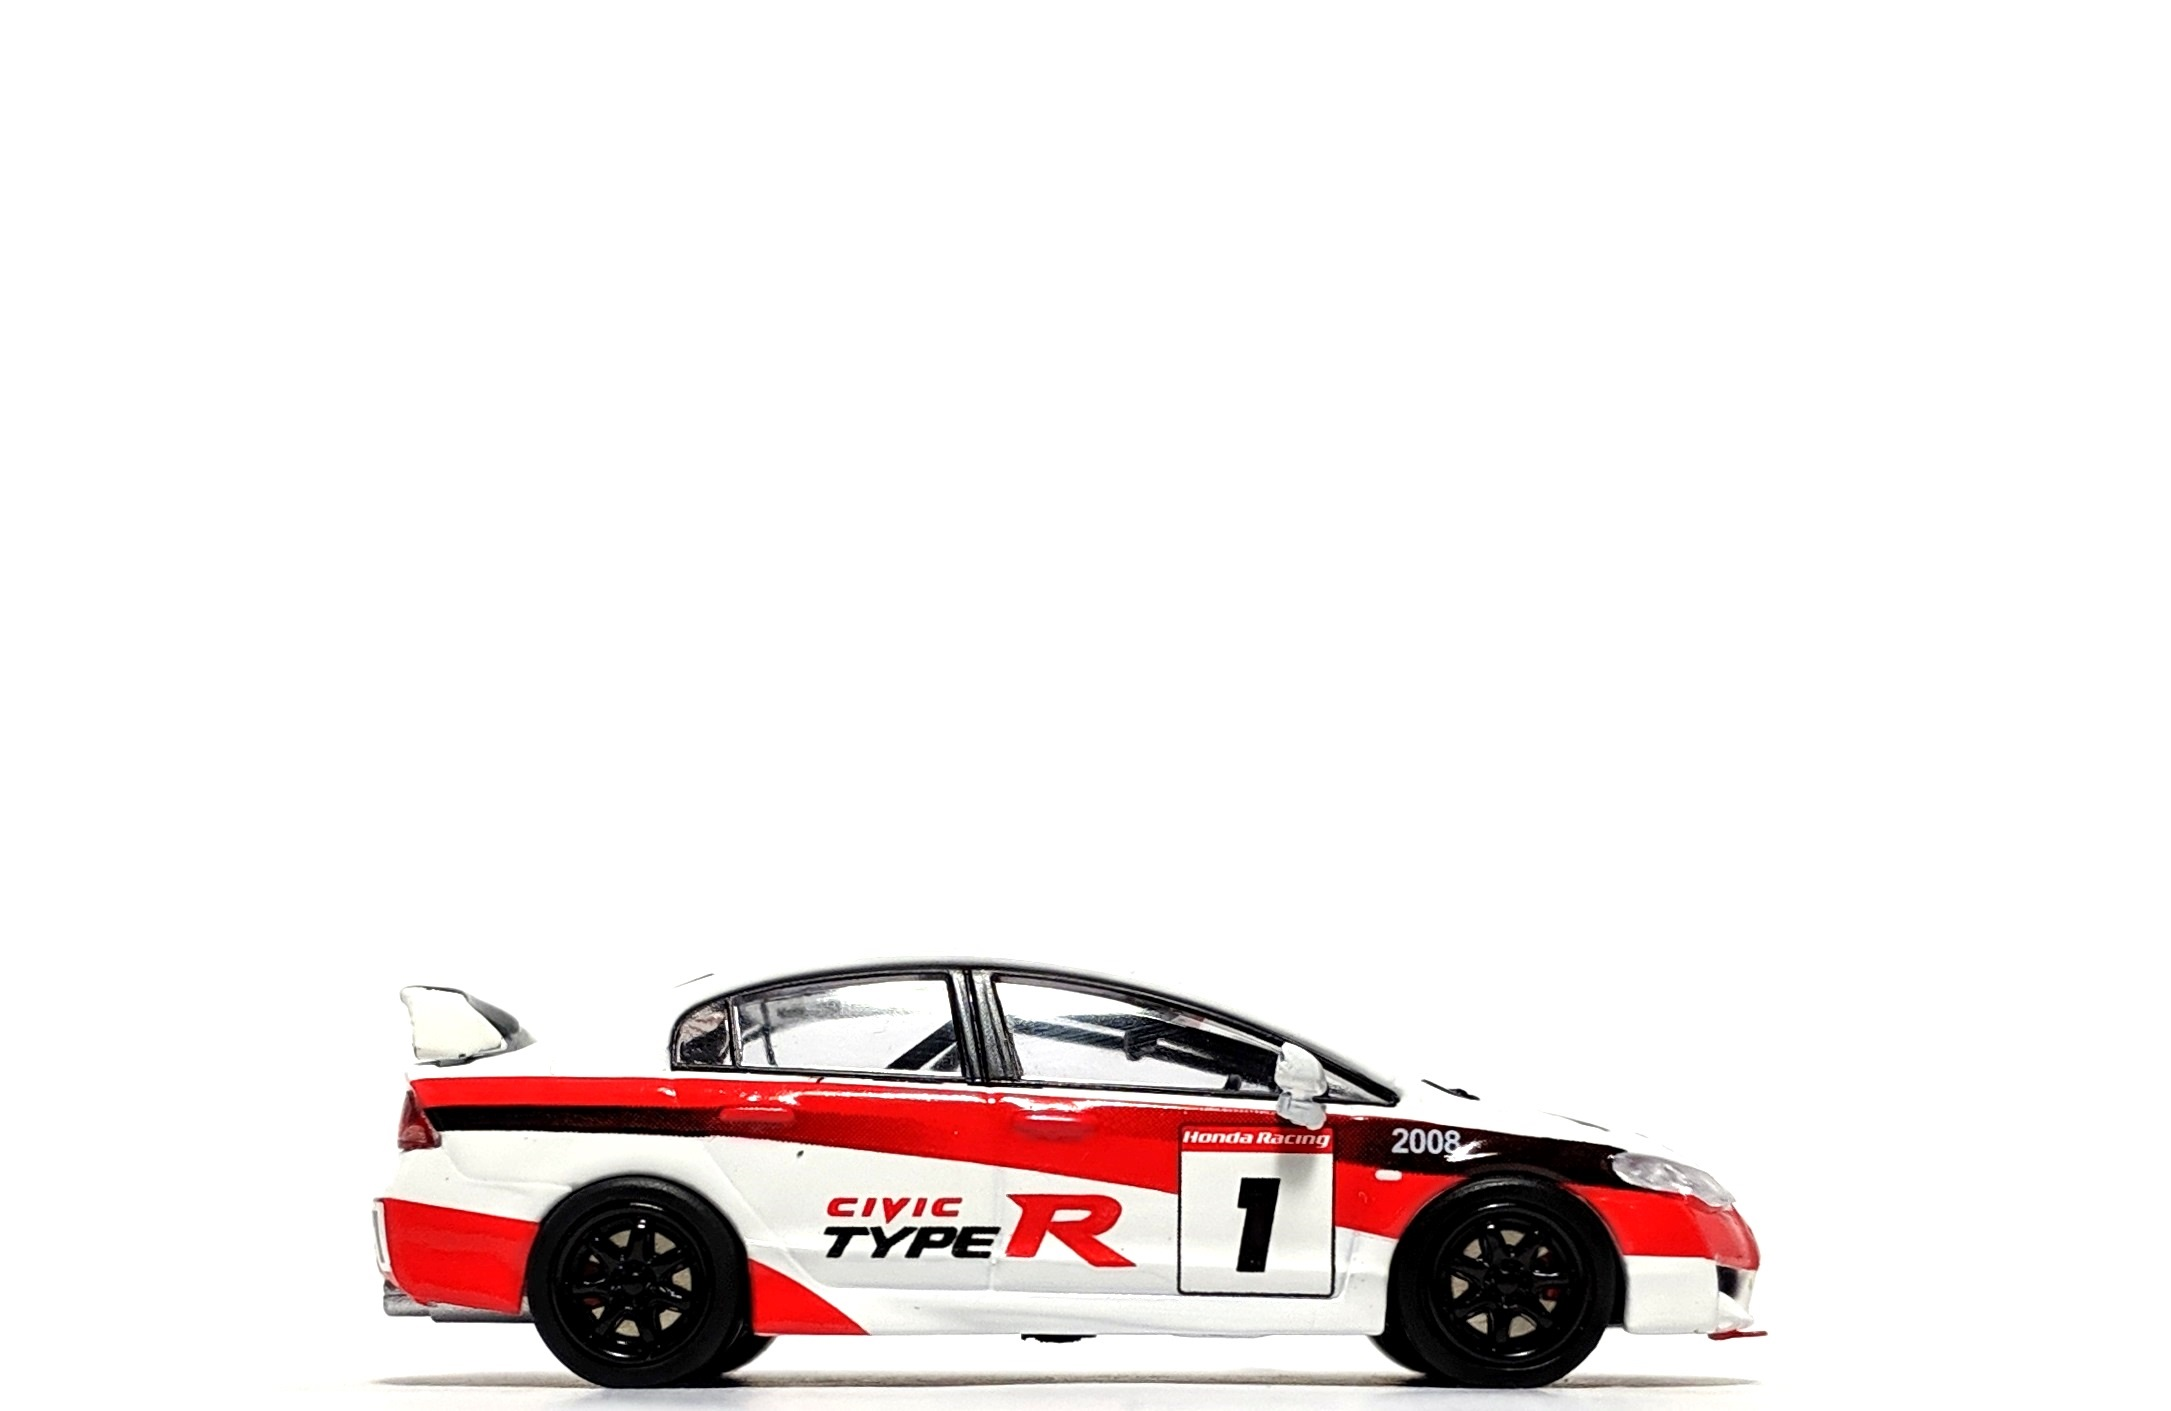 Honda Civic Type R FD2 #1 Japan One Make Race Prototype 2007, by Inno64